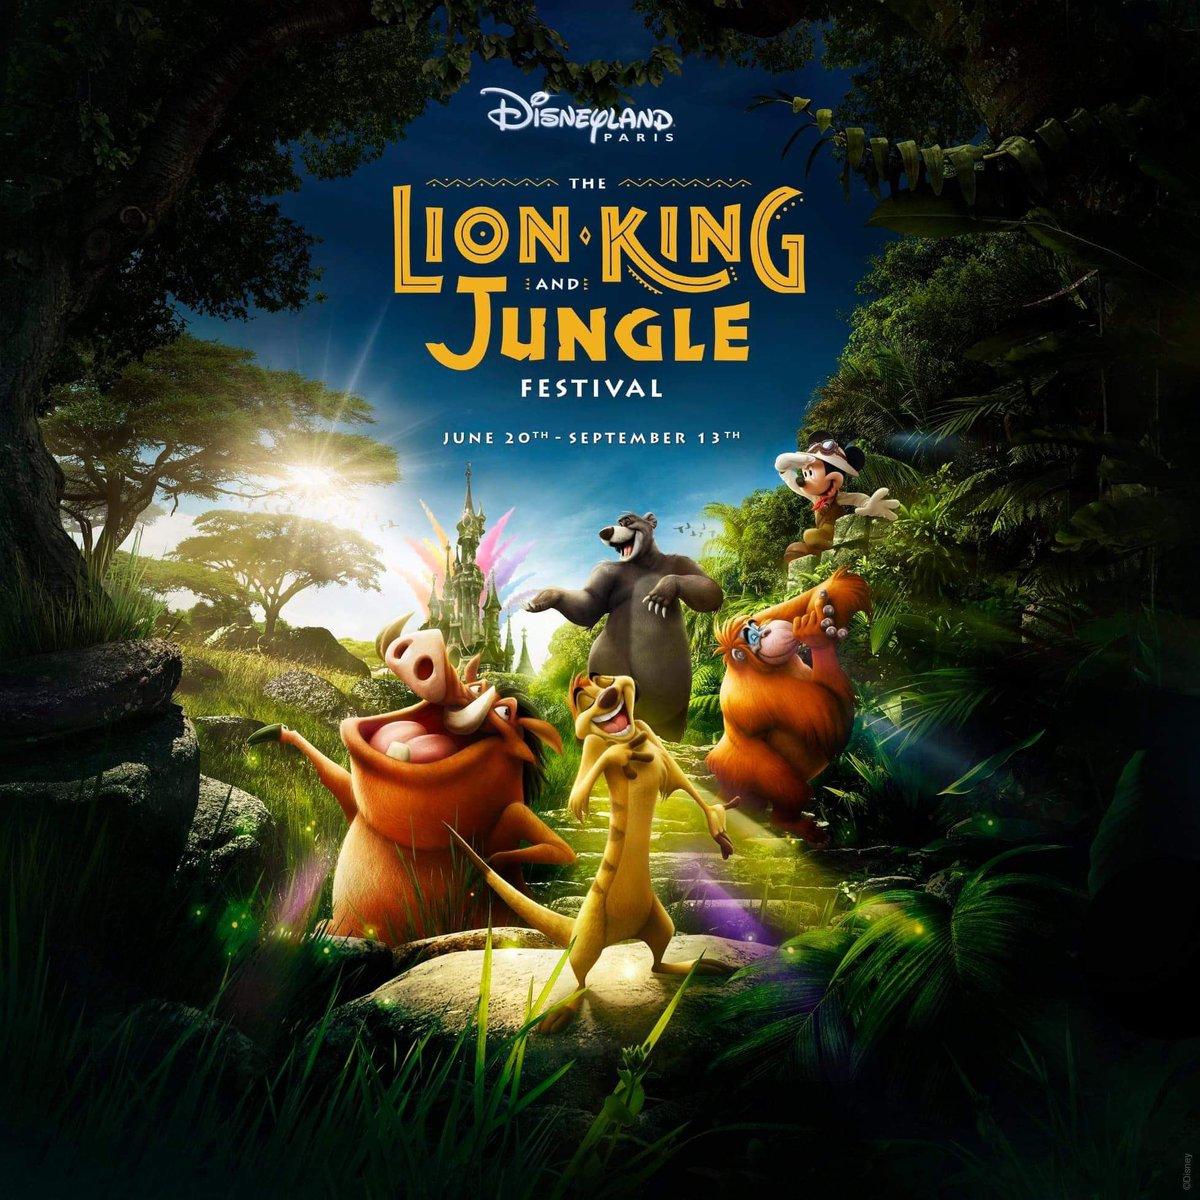 The Lion King and the Jungle Festival 2020